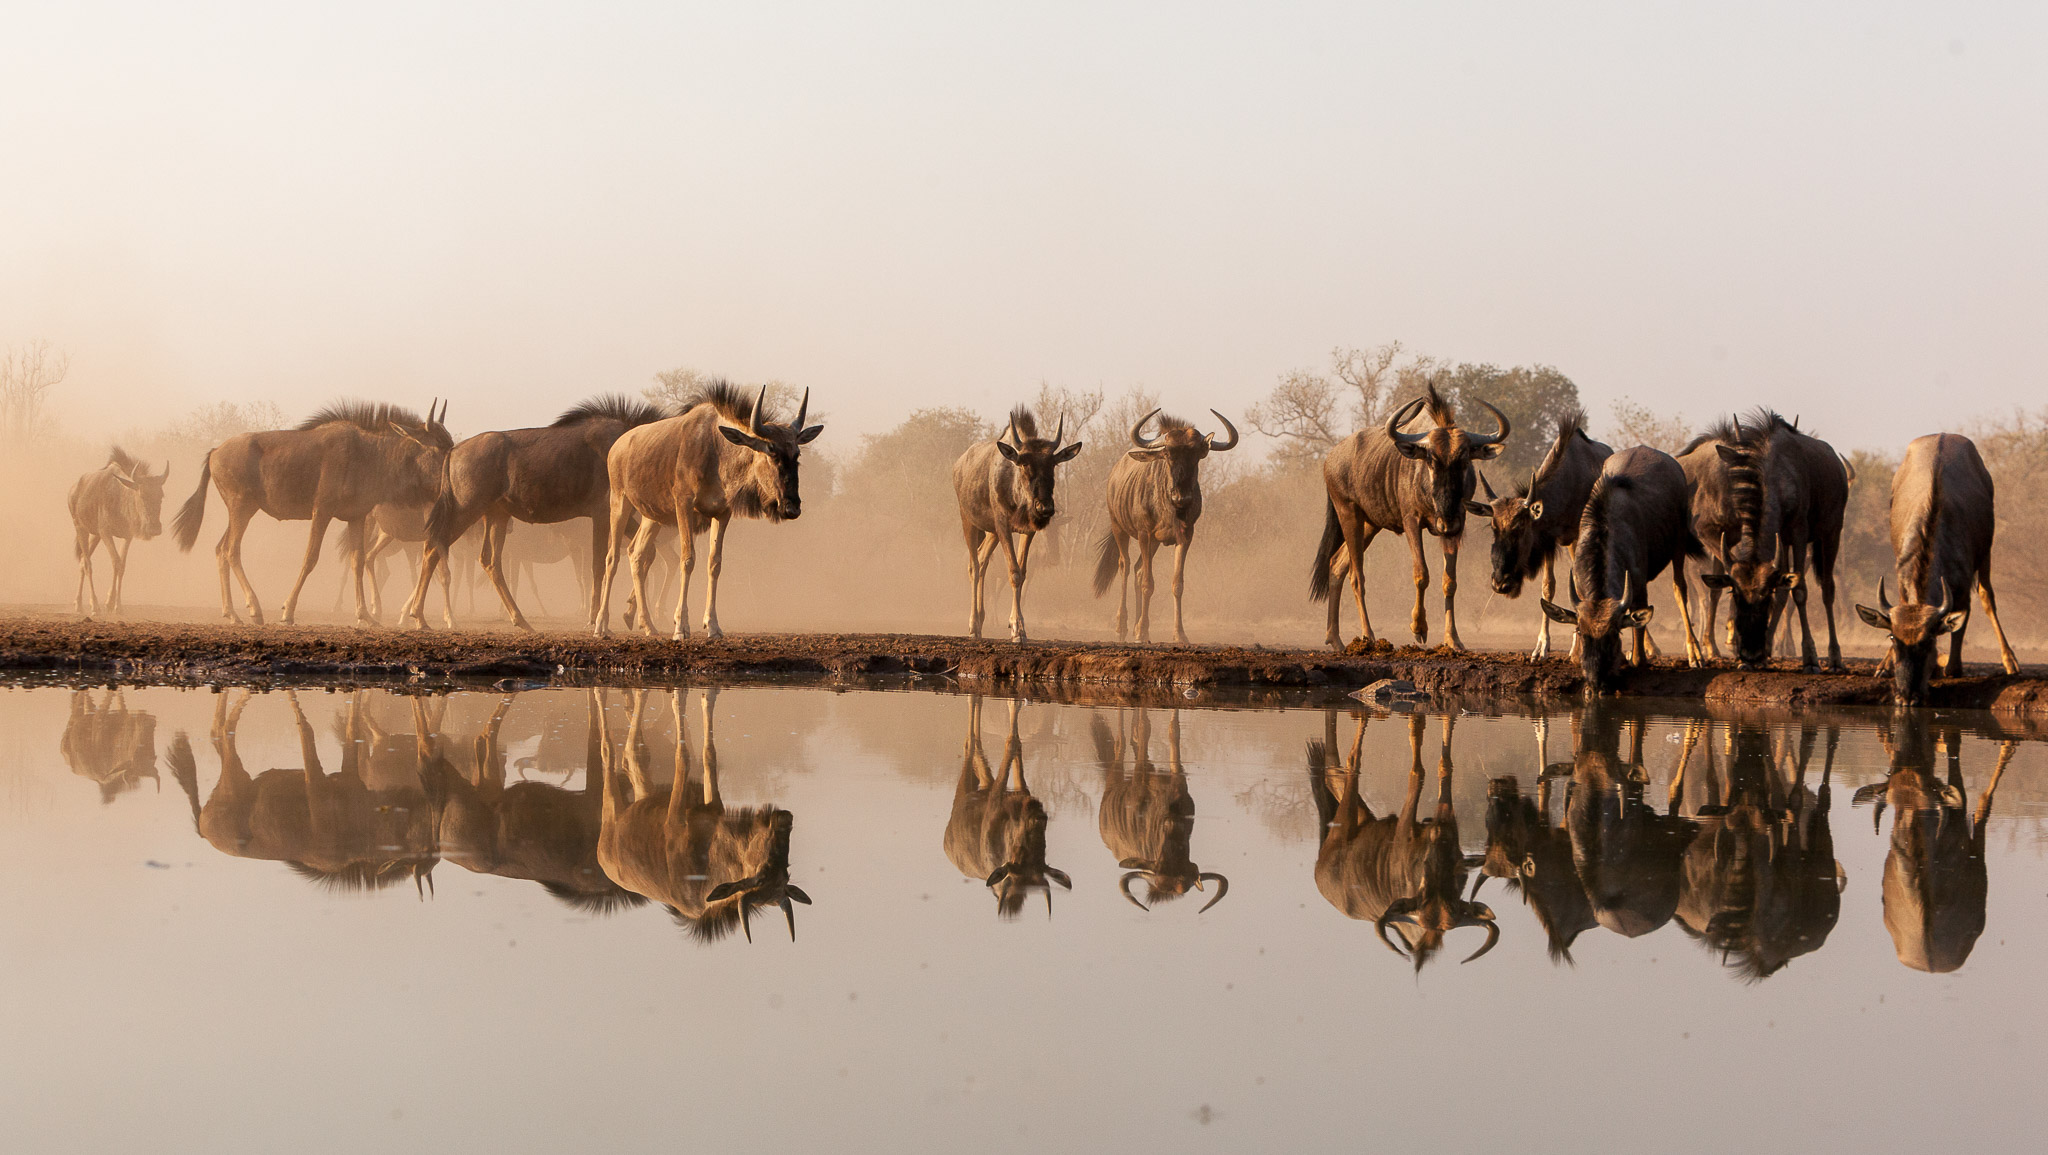 Reflection of a herd of wildebeest